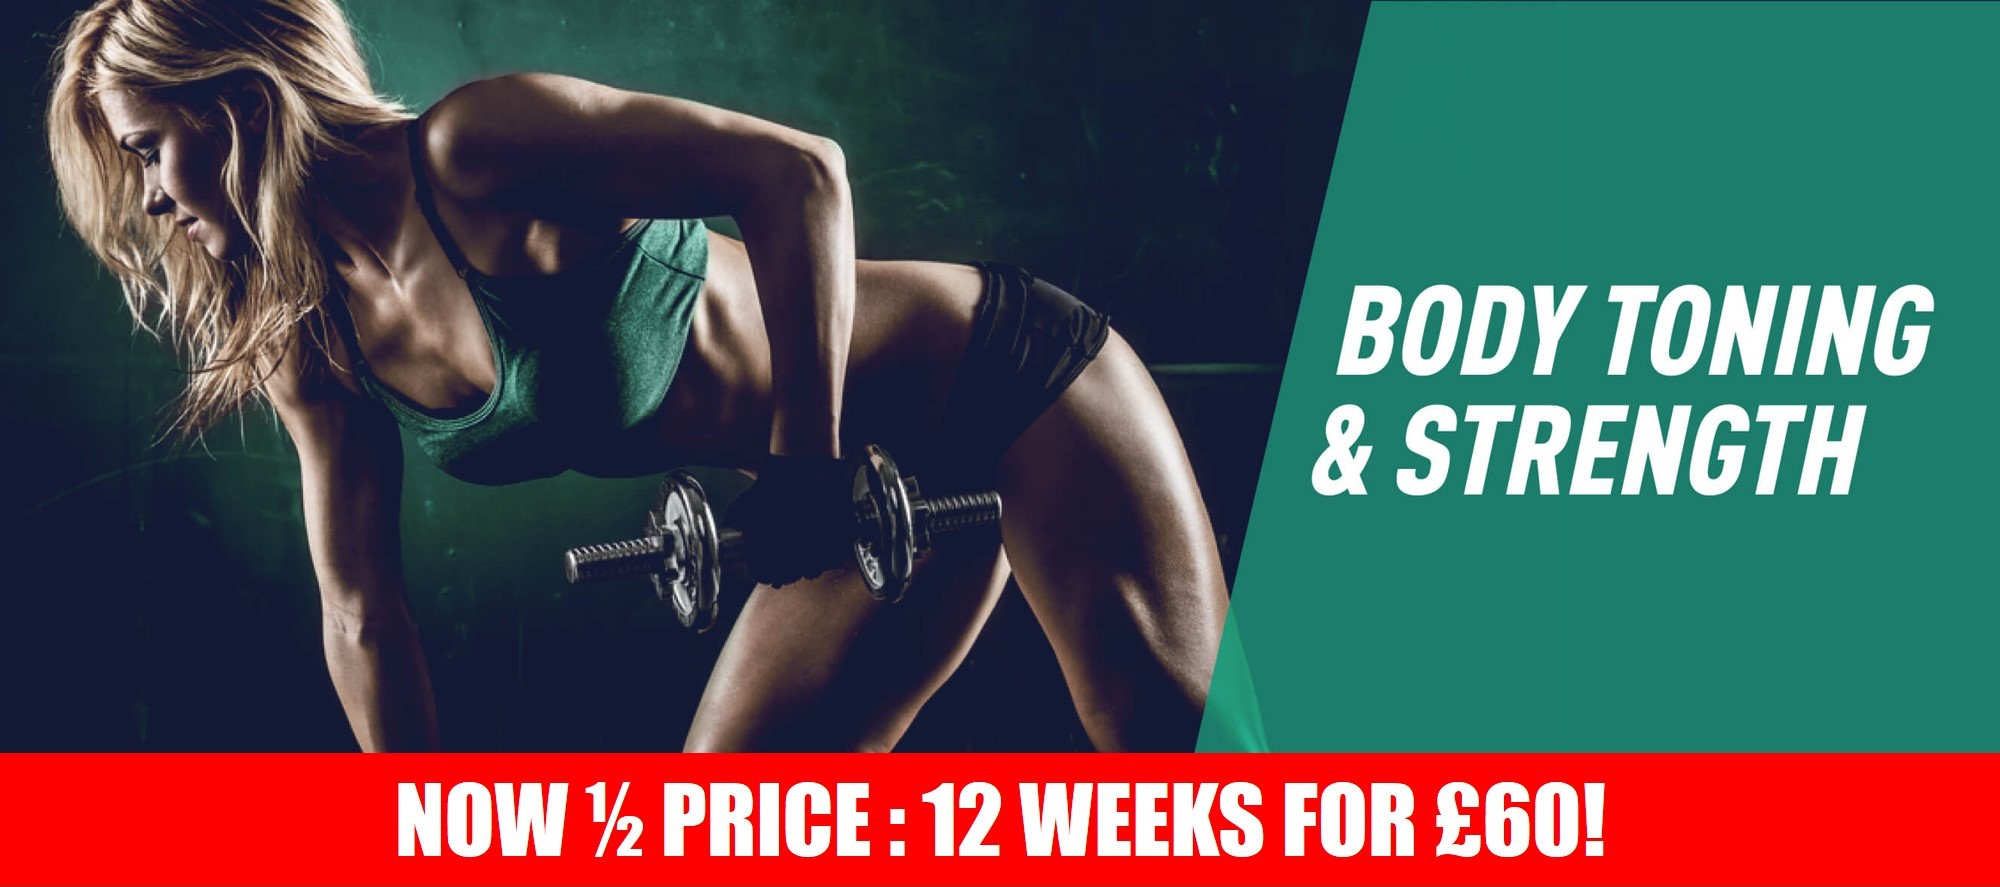 Body Toning & Strength - Online Programme - 50 SALE Banner